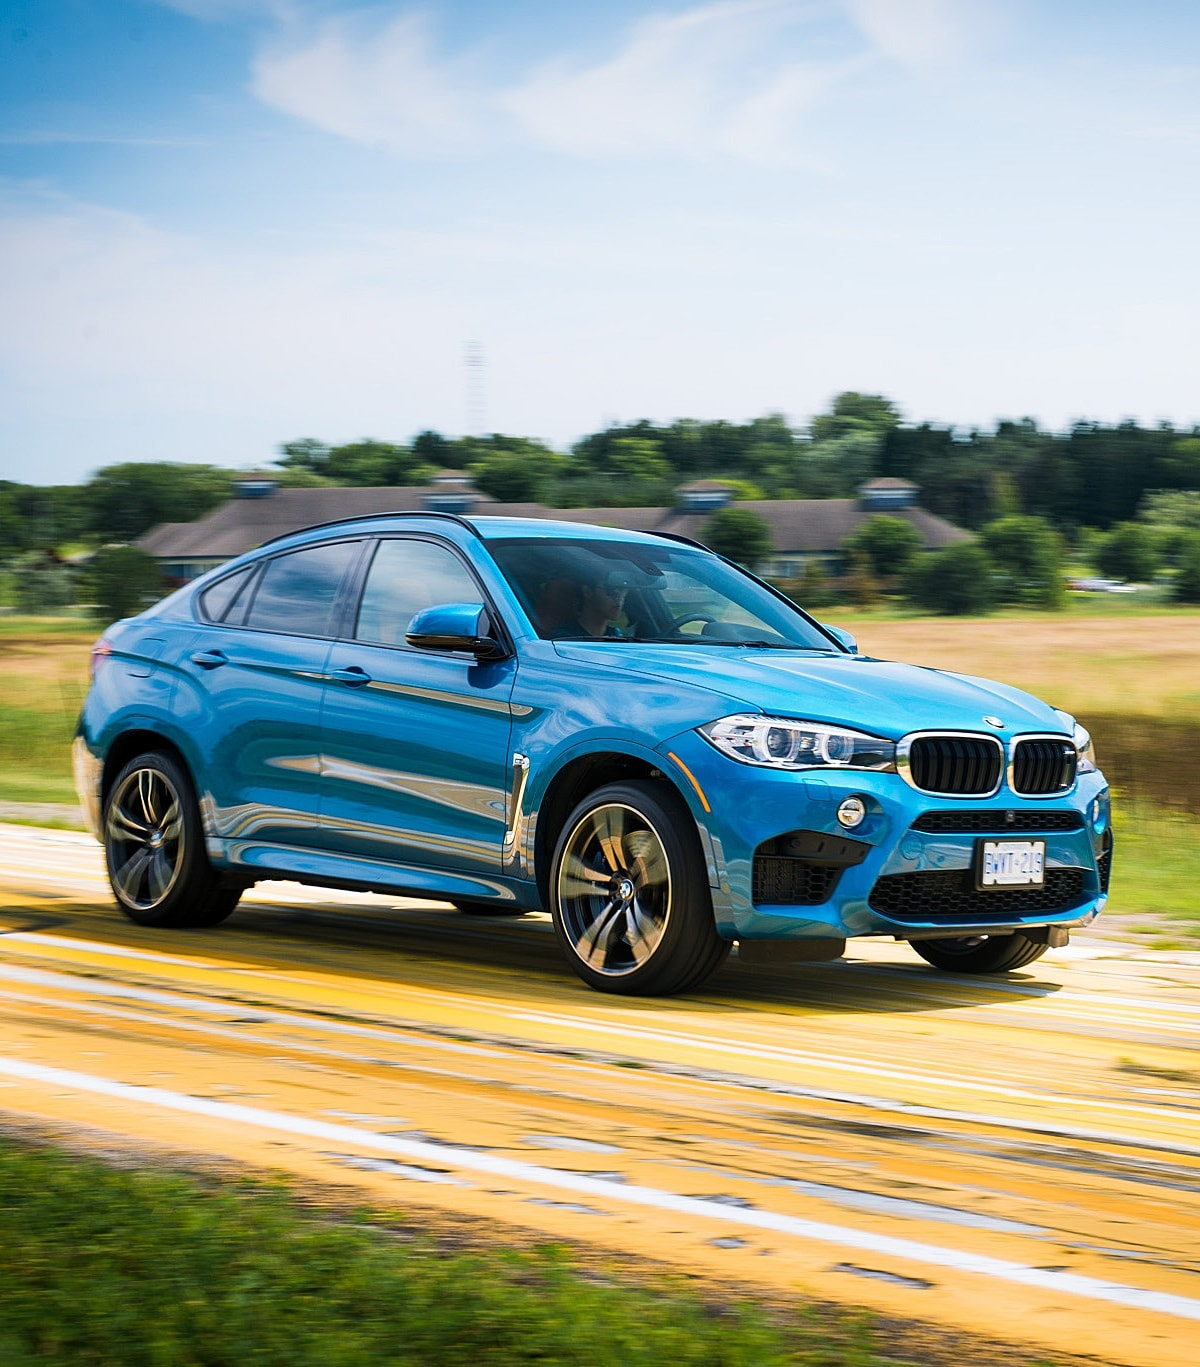 BMW X6 M (F86) HD Wallpapers